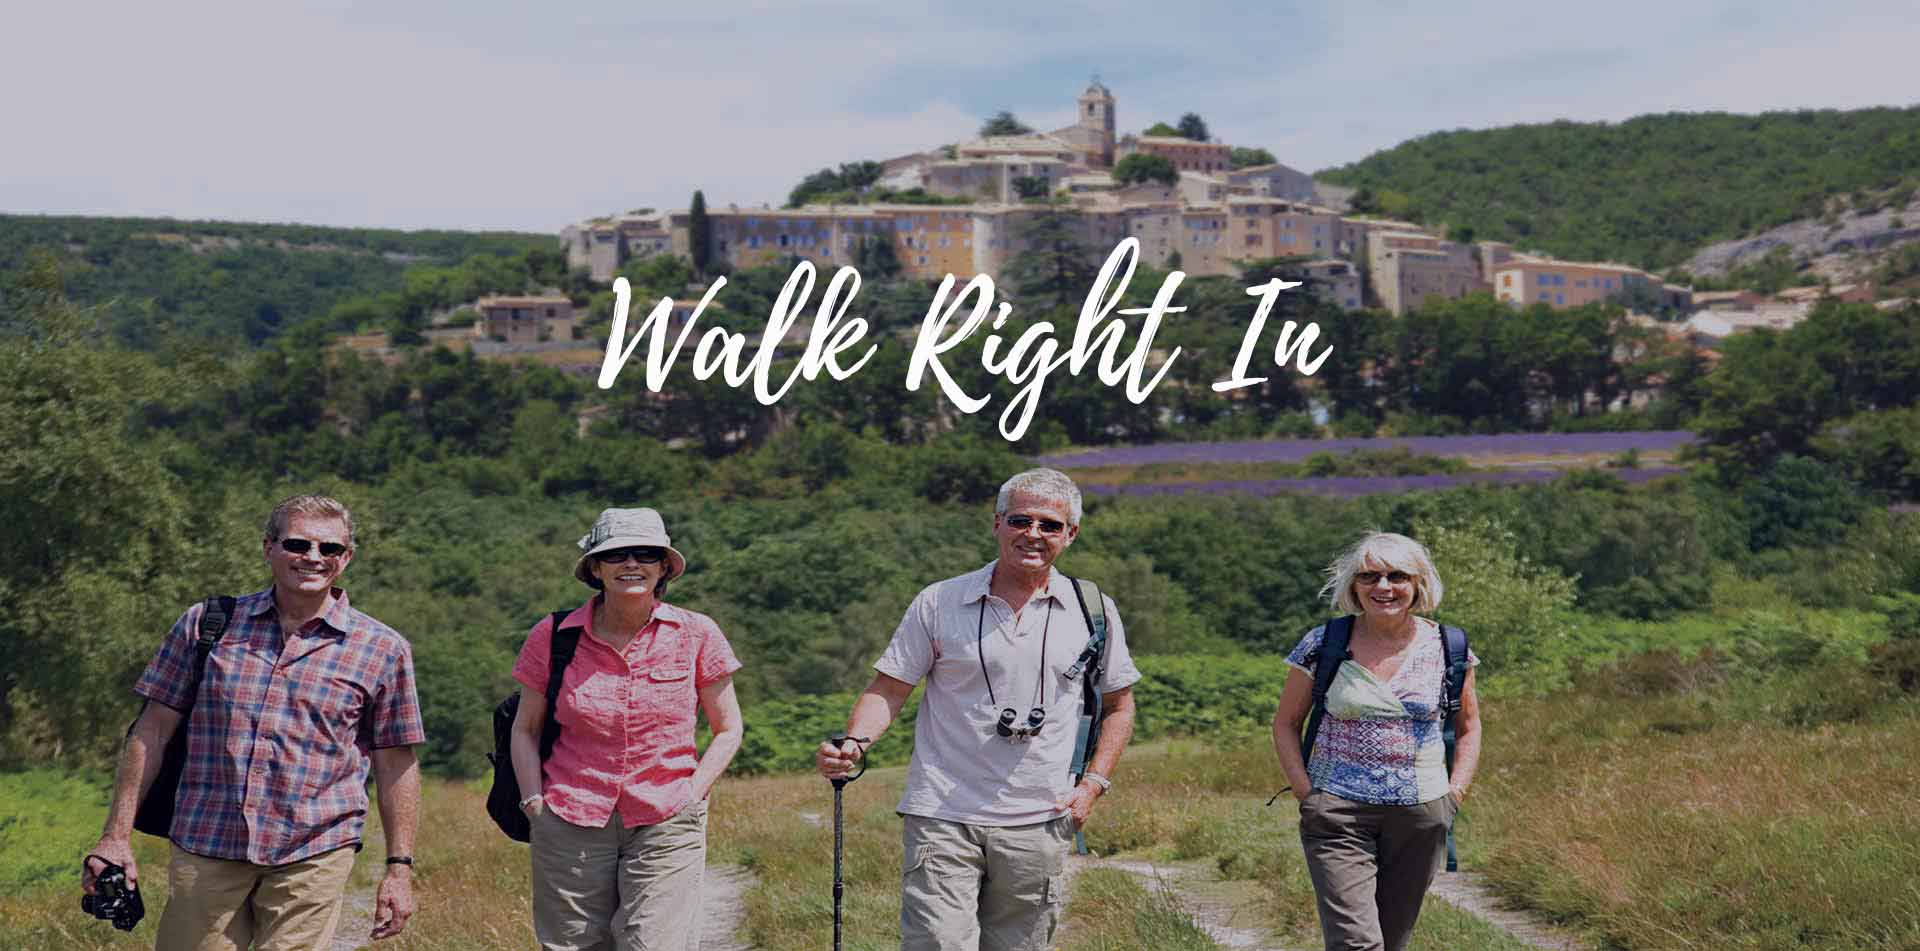 Europe France Bordeaux and Dordogne Valley travelers in field walk right in - luxury vacation destinations